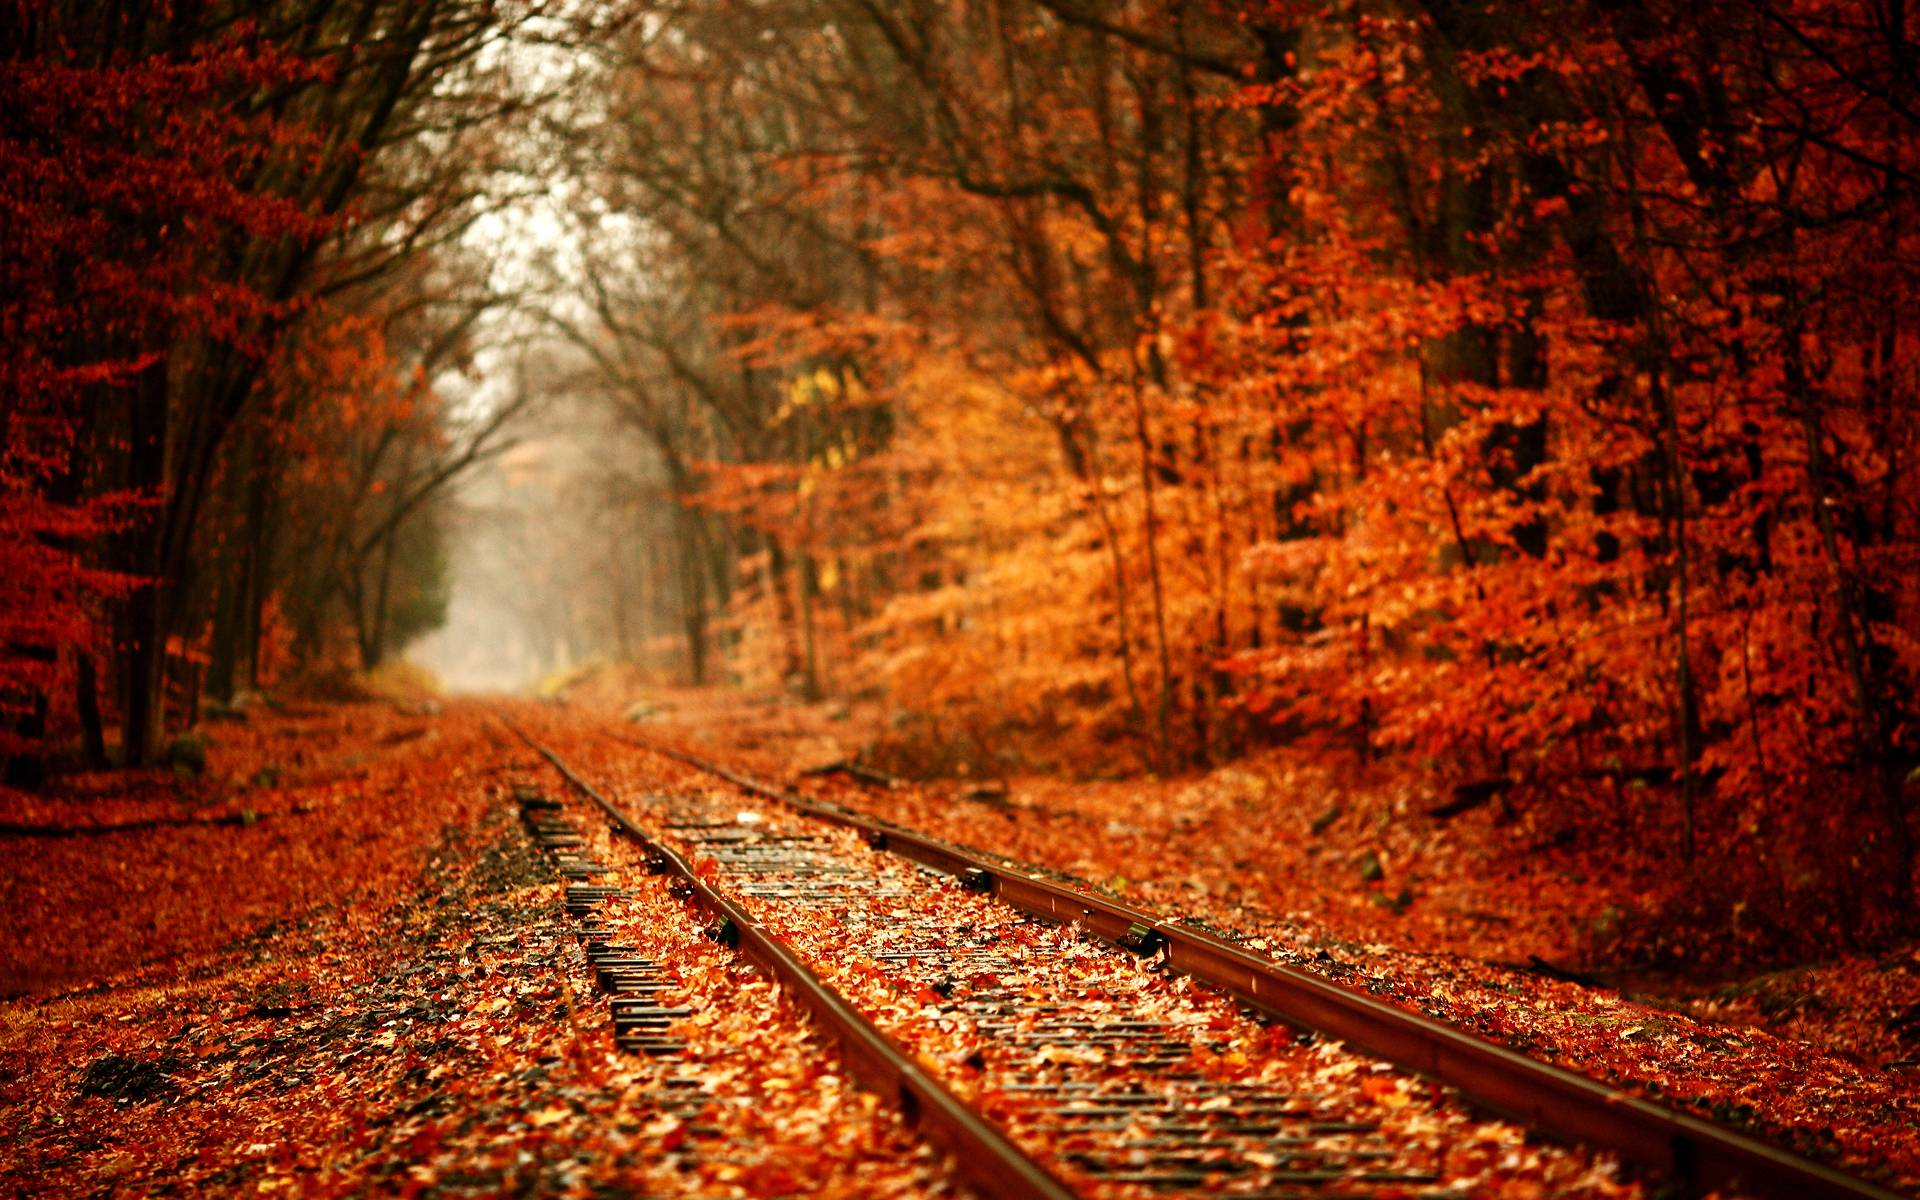 Autumn Nature Wallpapers HD Pictures – One HD Wallpaper Pictures